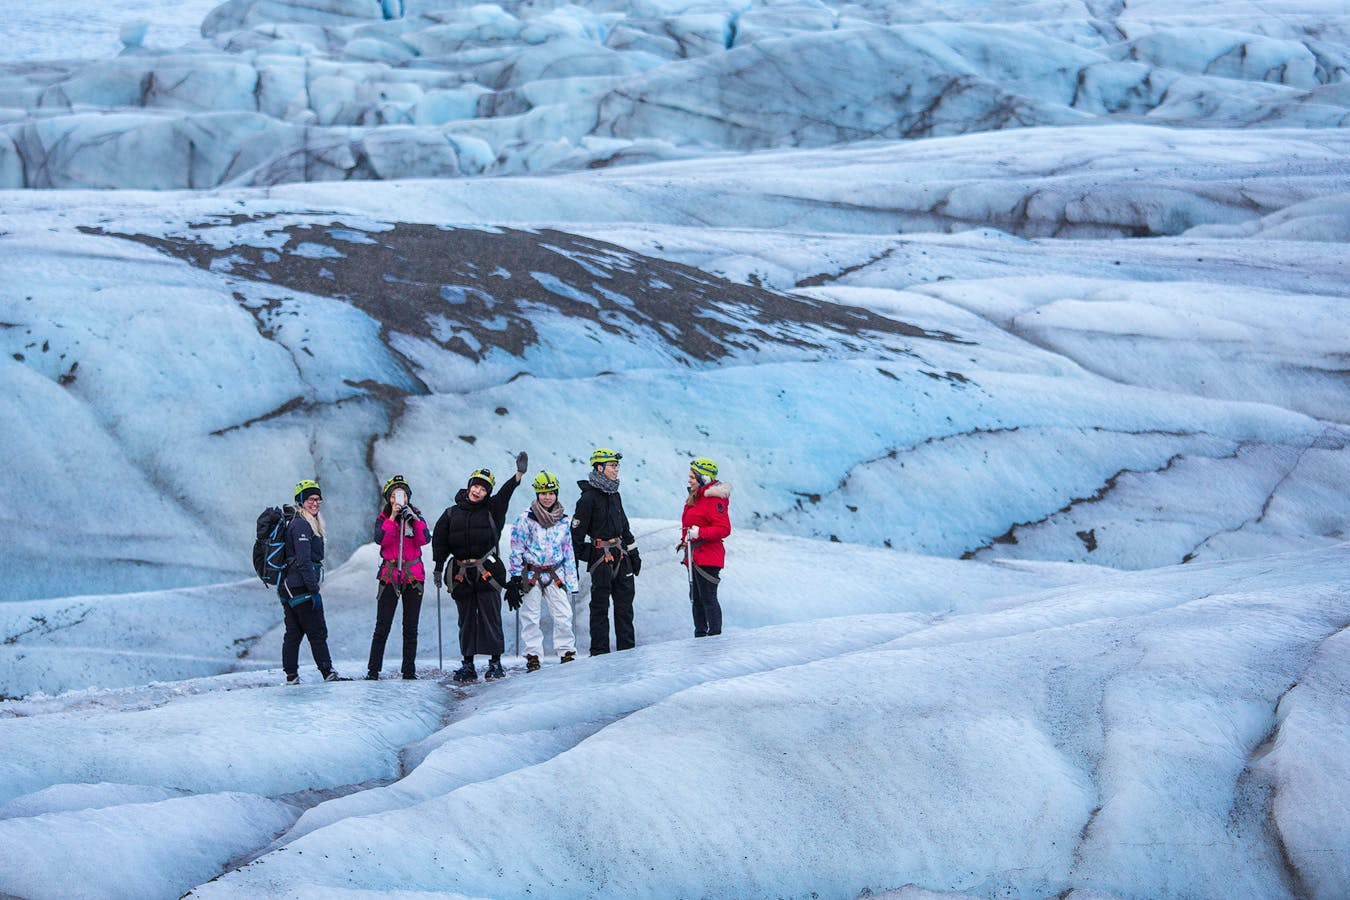 3 in 1 Bundled Discount Activity Tours with Volcano Caving, Snorkeling & Glacier Hiking - day 3